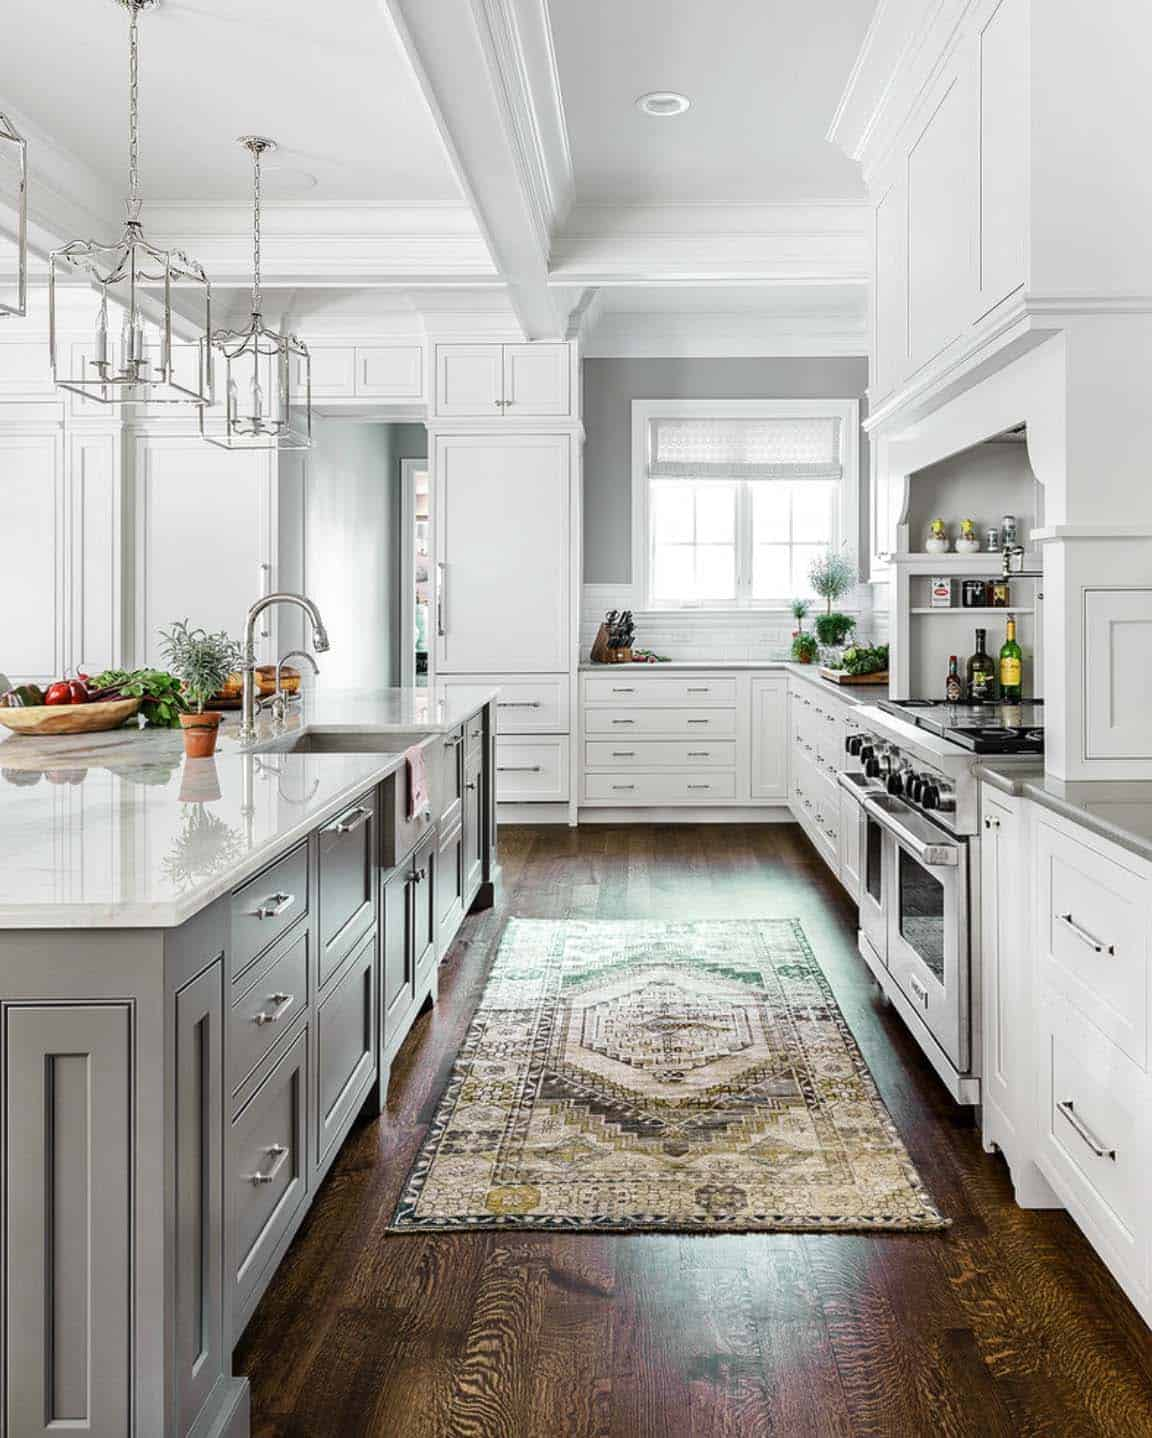 White Kitchen Cabinets With Gray Countertops: One Kindesign